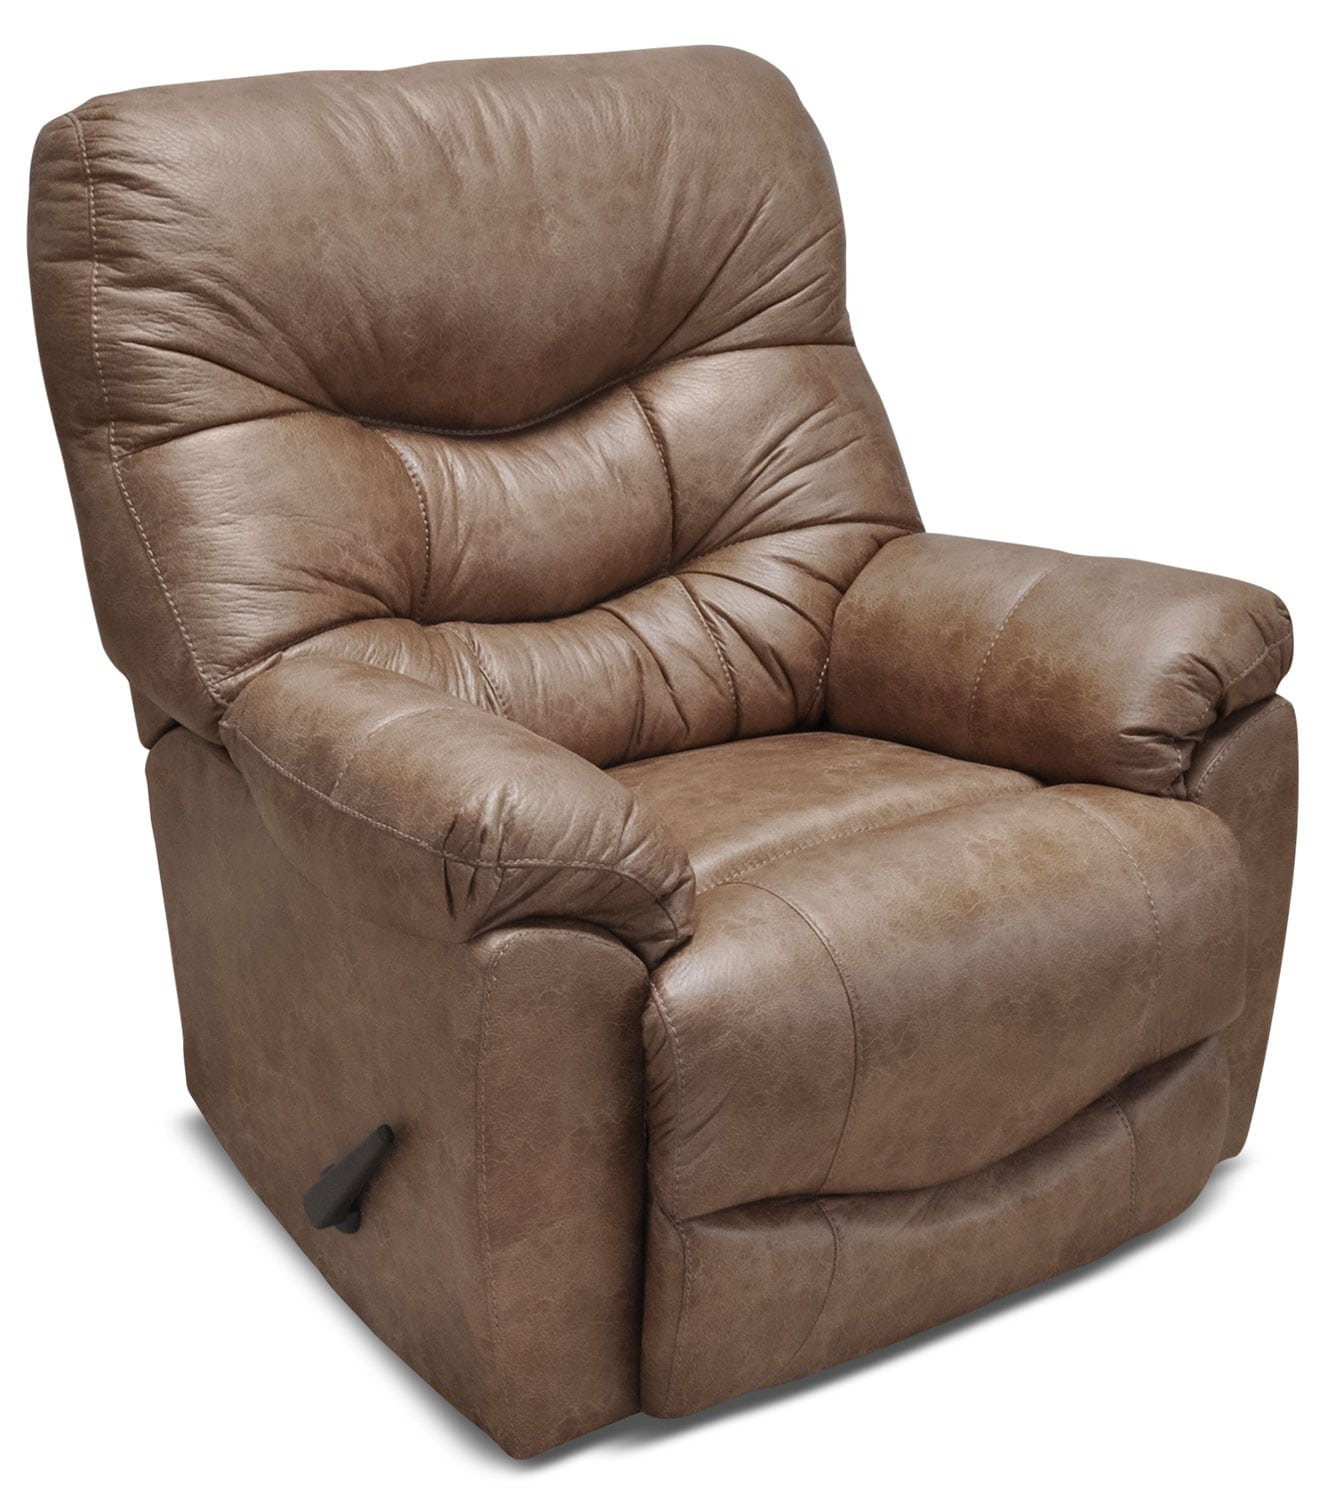 4595 leather look fabric rocker reclining chair camel Recliners that look like chairs